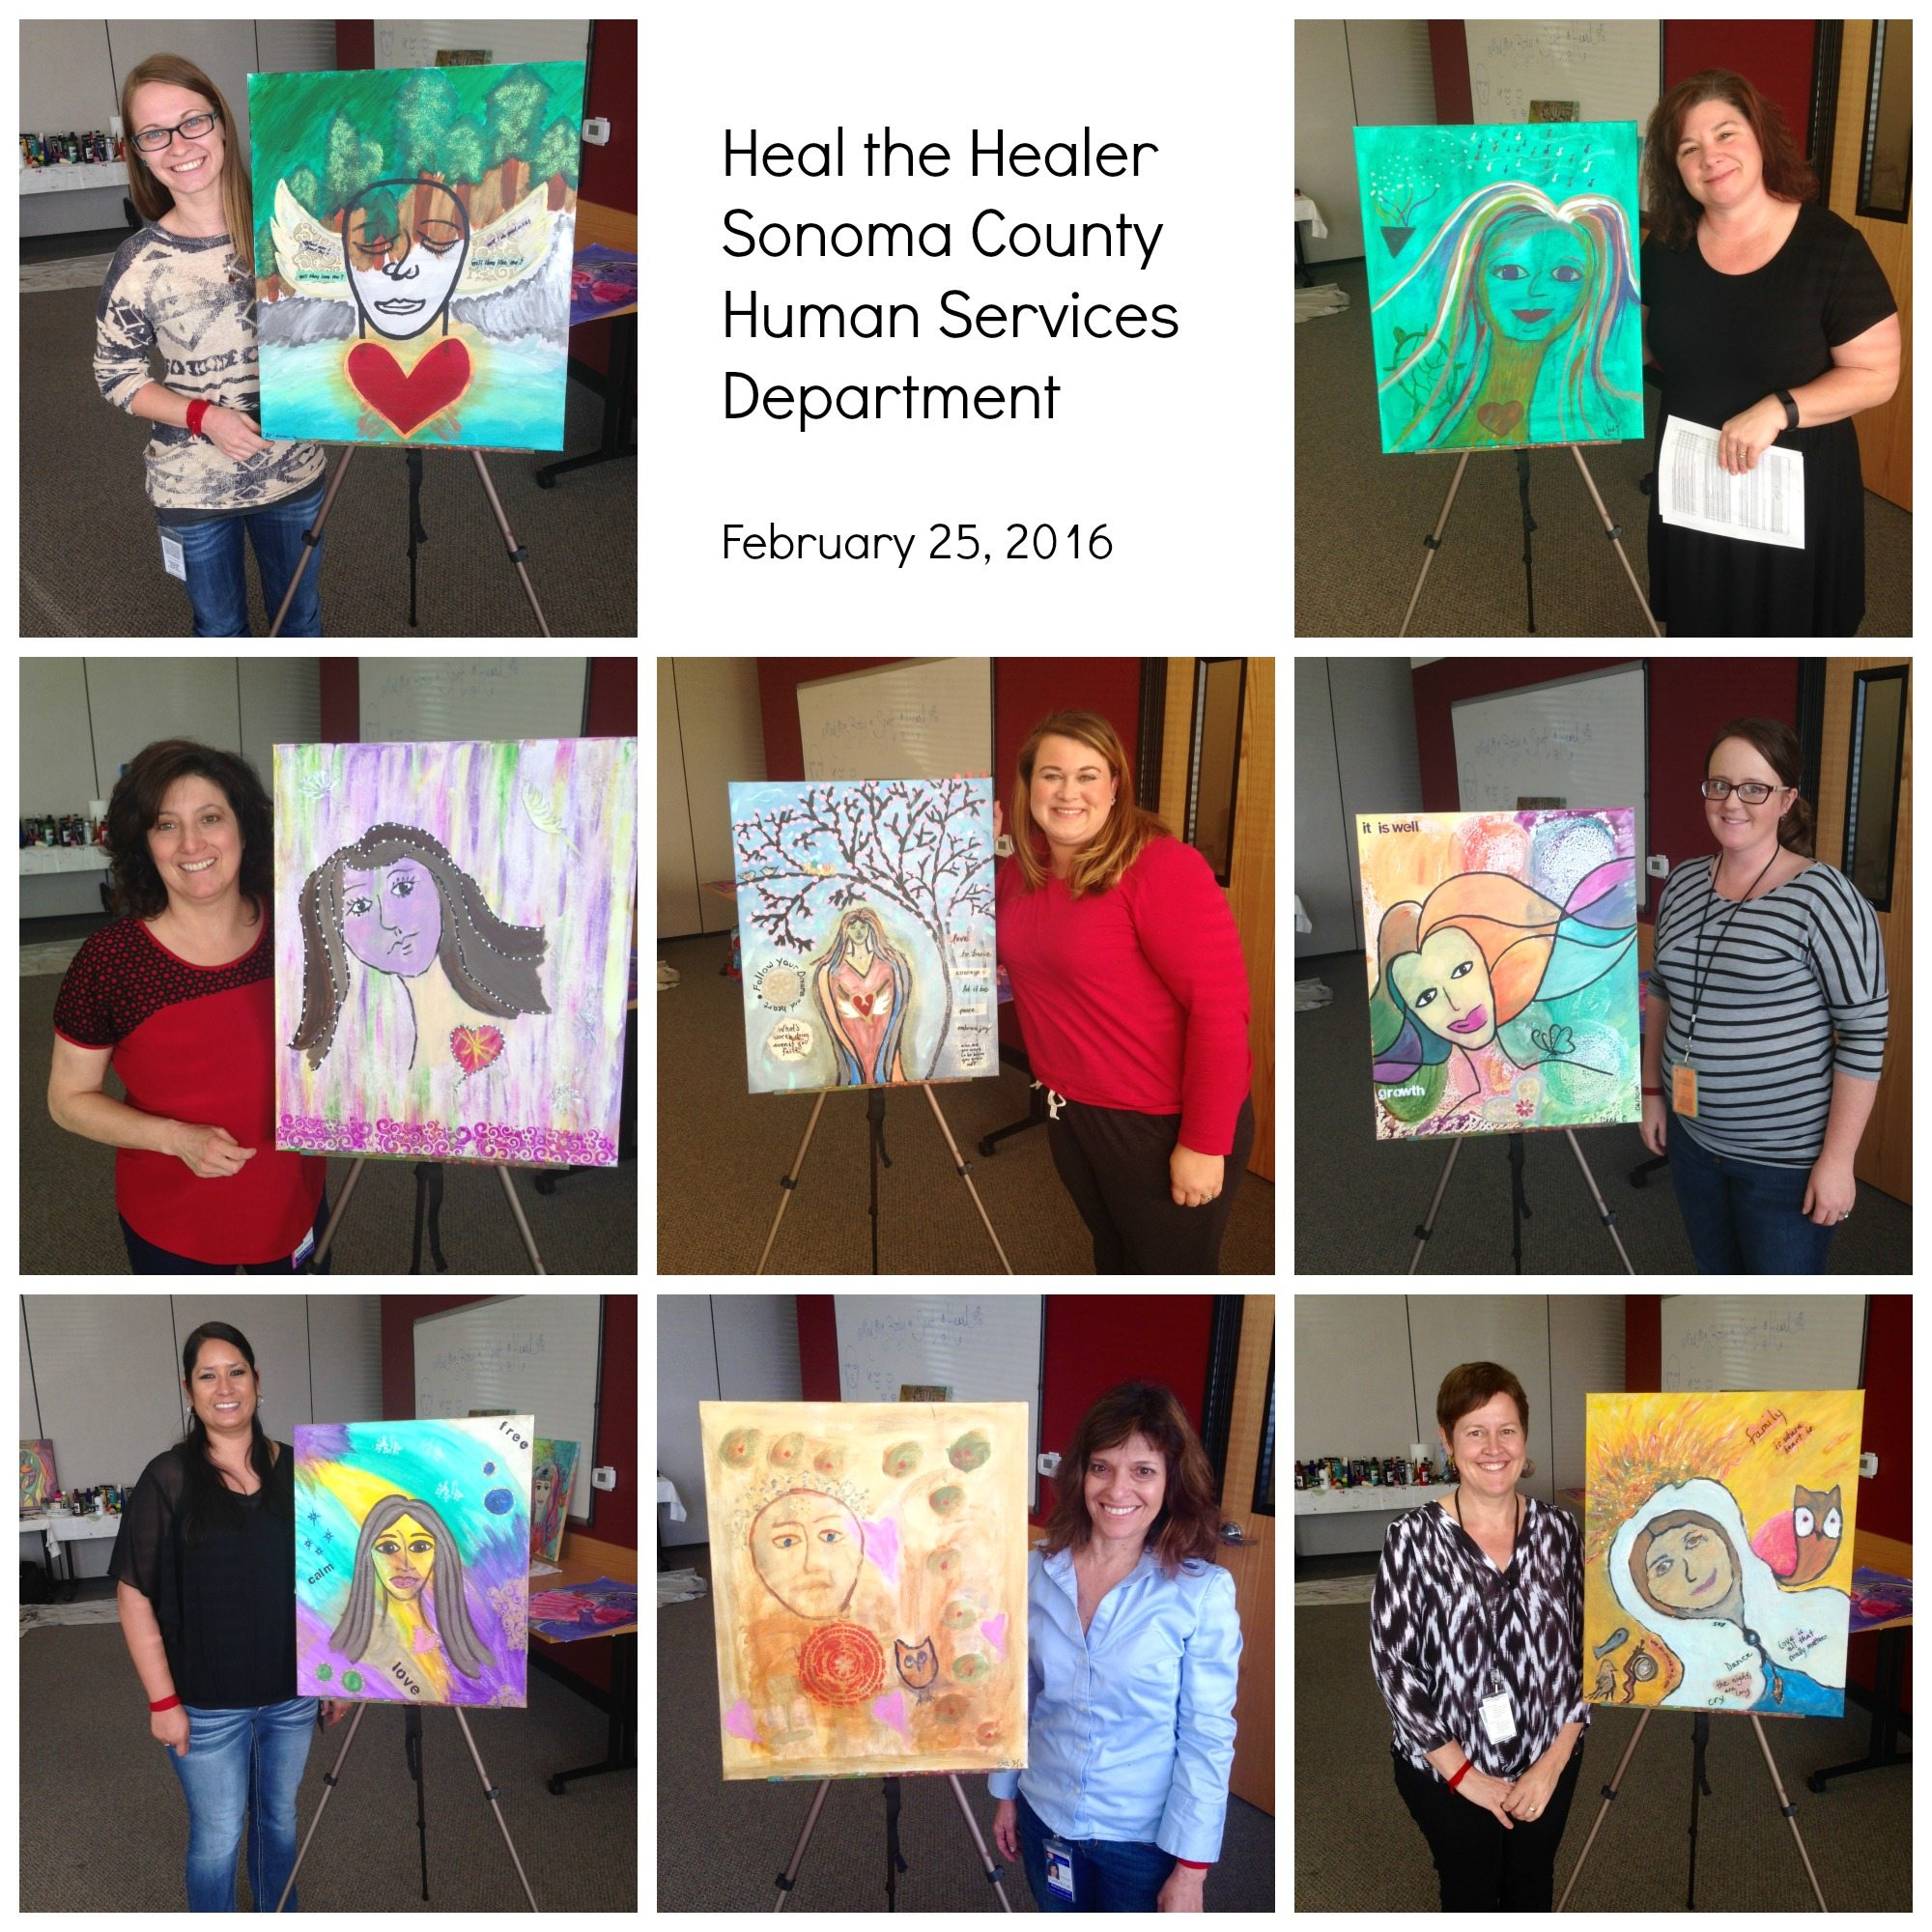 Healing the Healer-Sonoma County Human Services Department-2-25-16